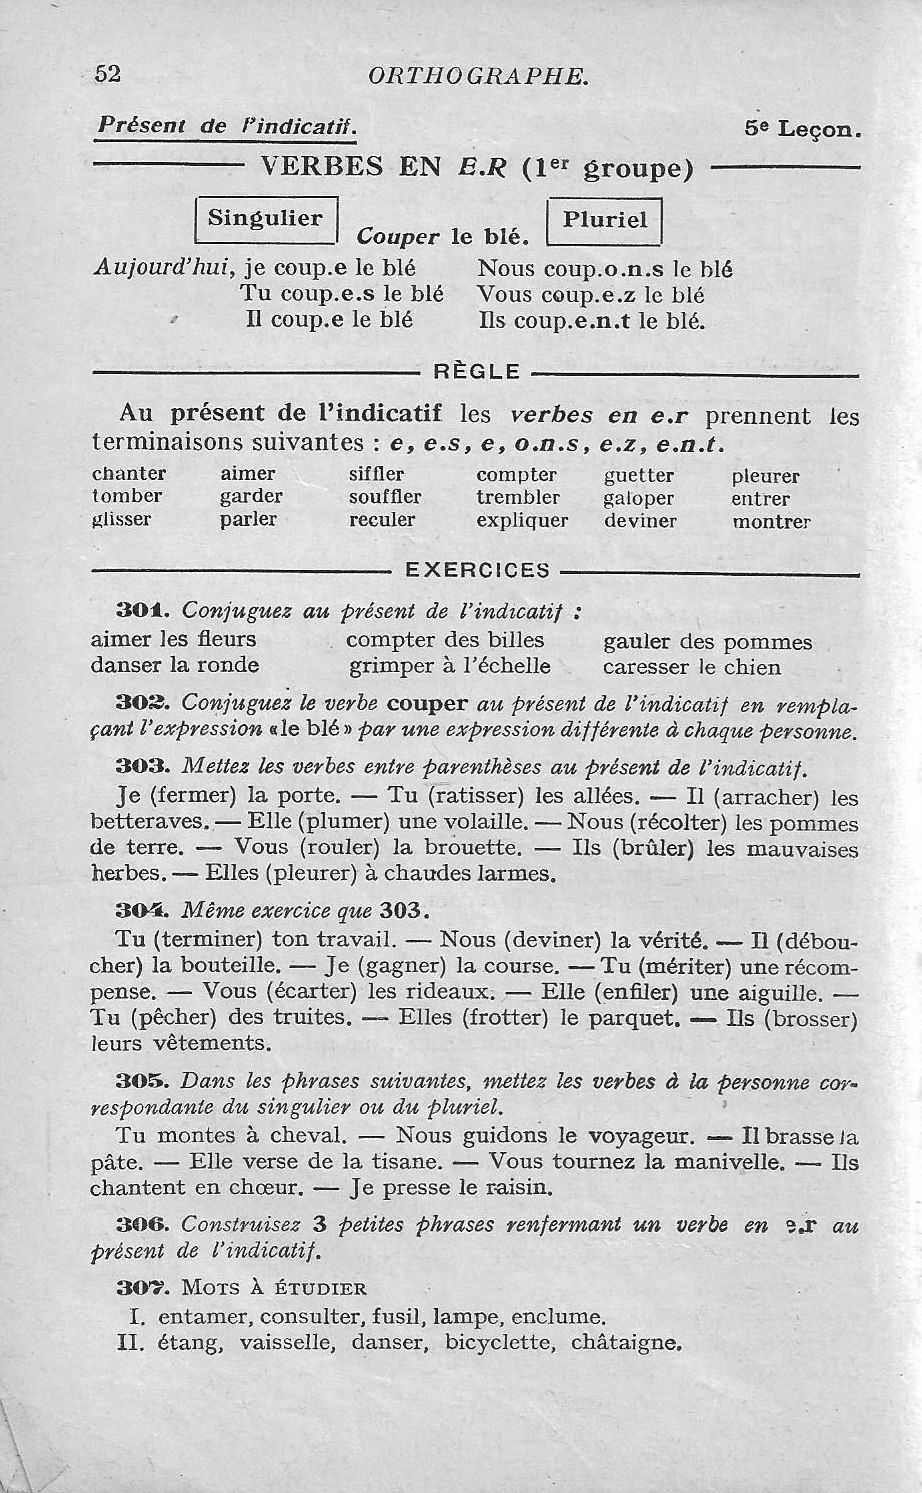 Bled Cours D Orthographe Ce Cm1 1956 Cm1 Orthographe